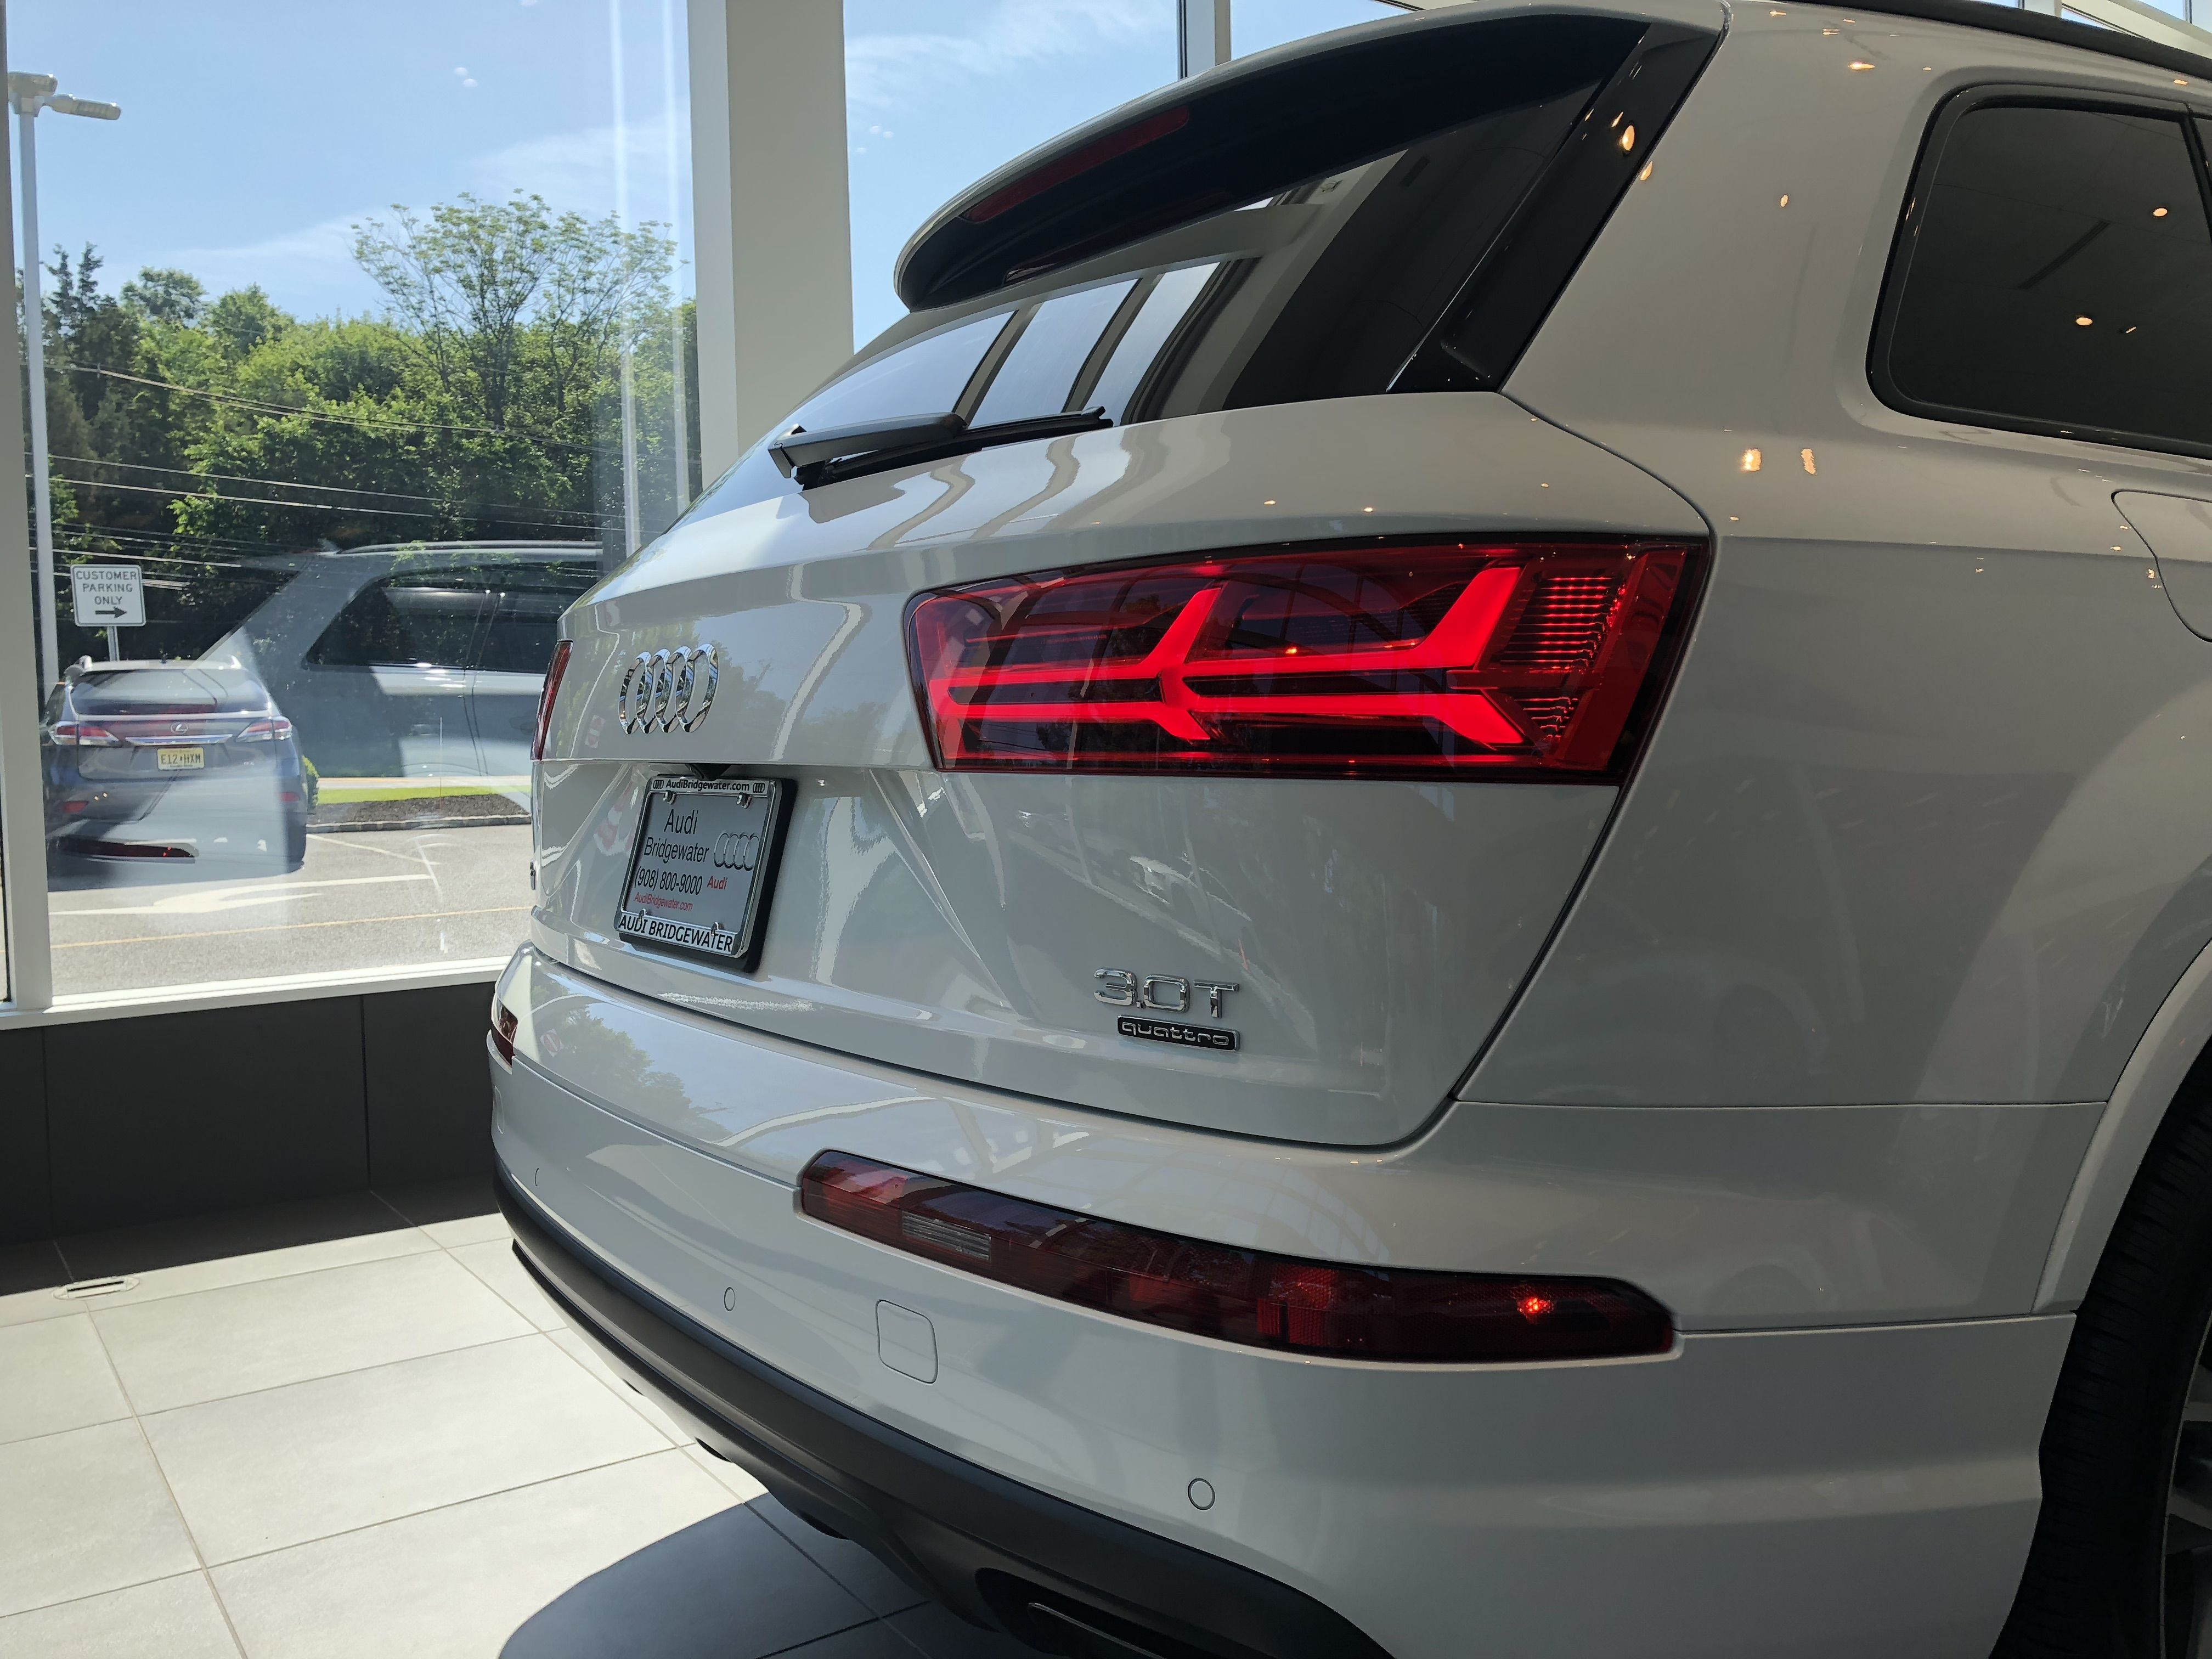 Angled View Of 2018 Audi Q7 With Tail Lights And Decals Vehicle Available At Audi Of Bridgewater Nj Audi Dealership Audi Audi Q7